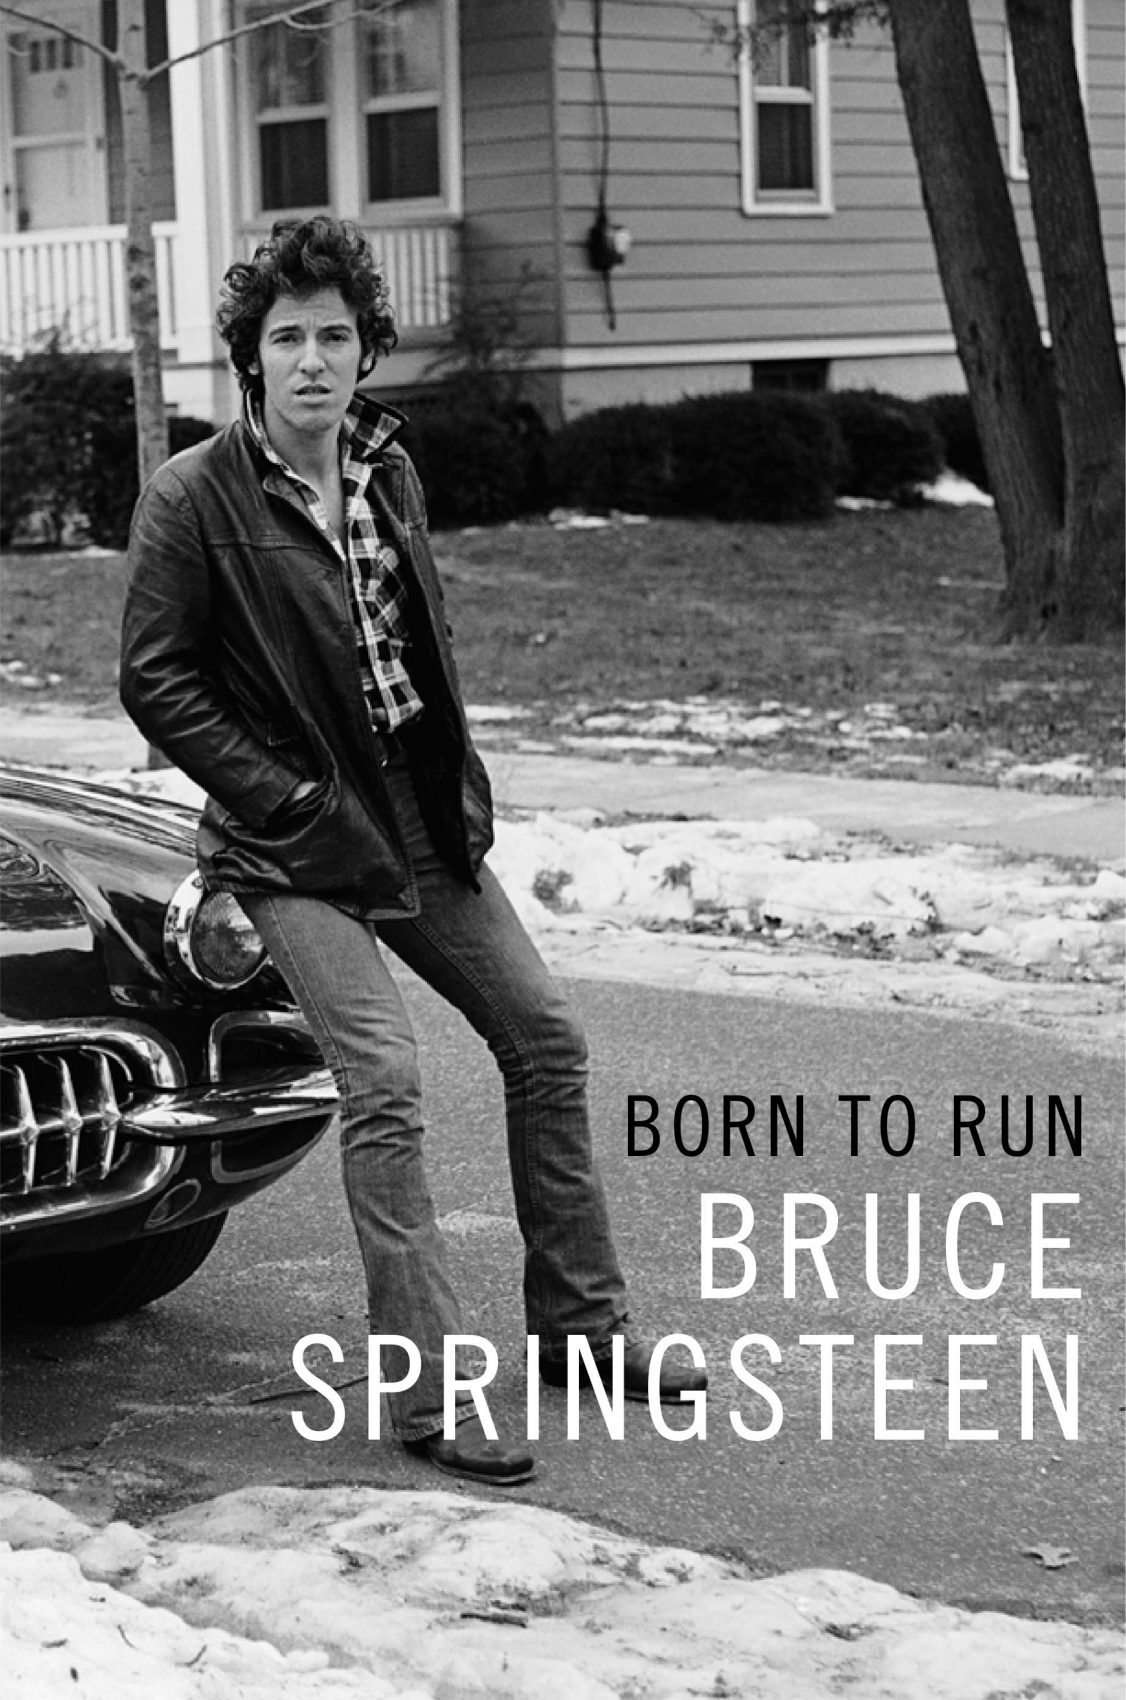 Bruce Springsteen — 'Born To Run' And Built To Endure | The